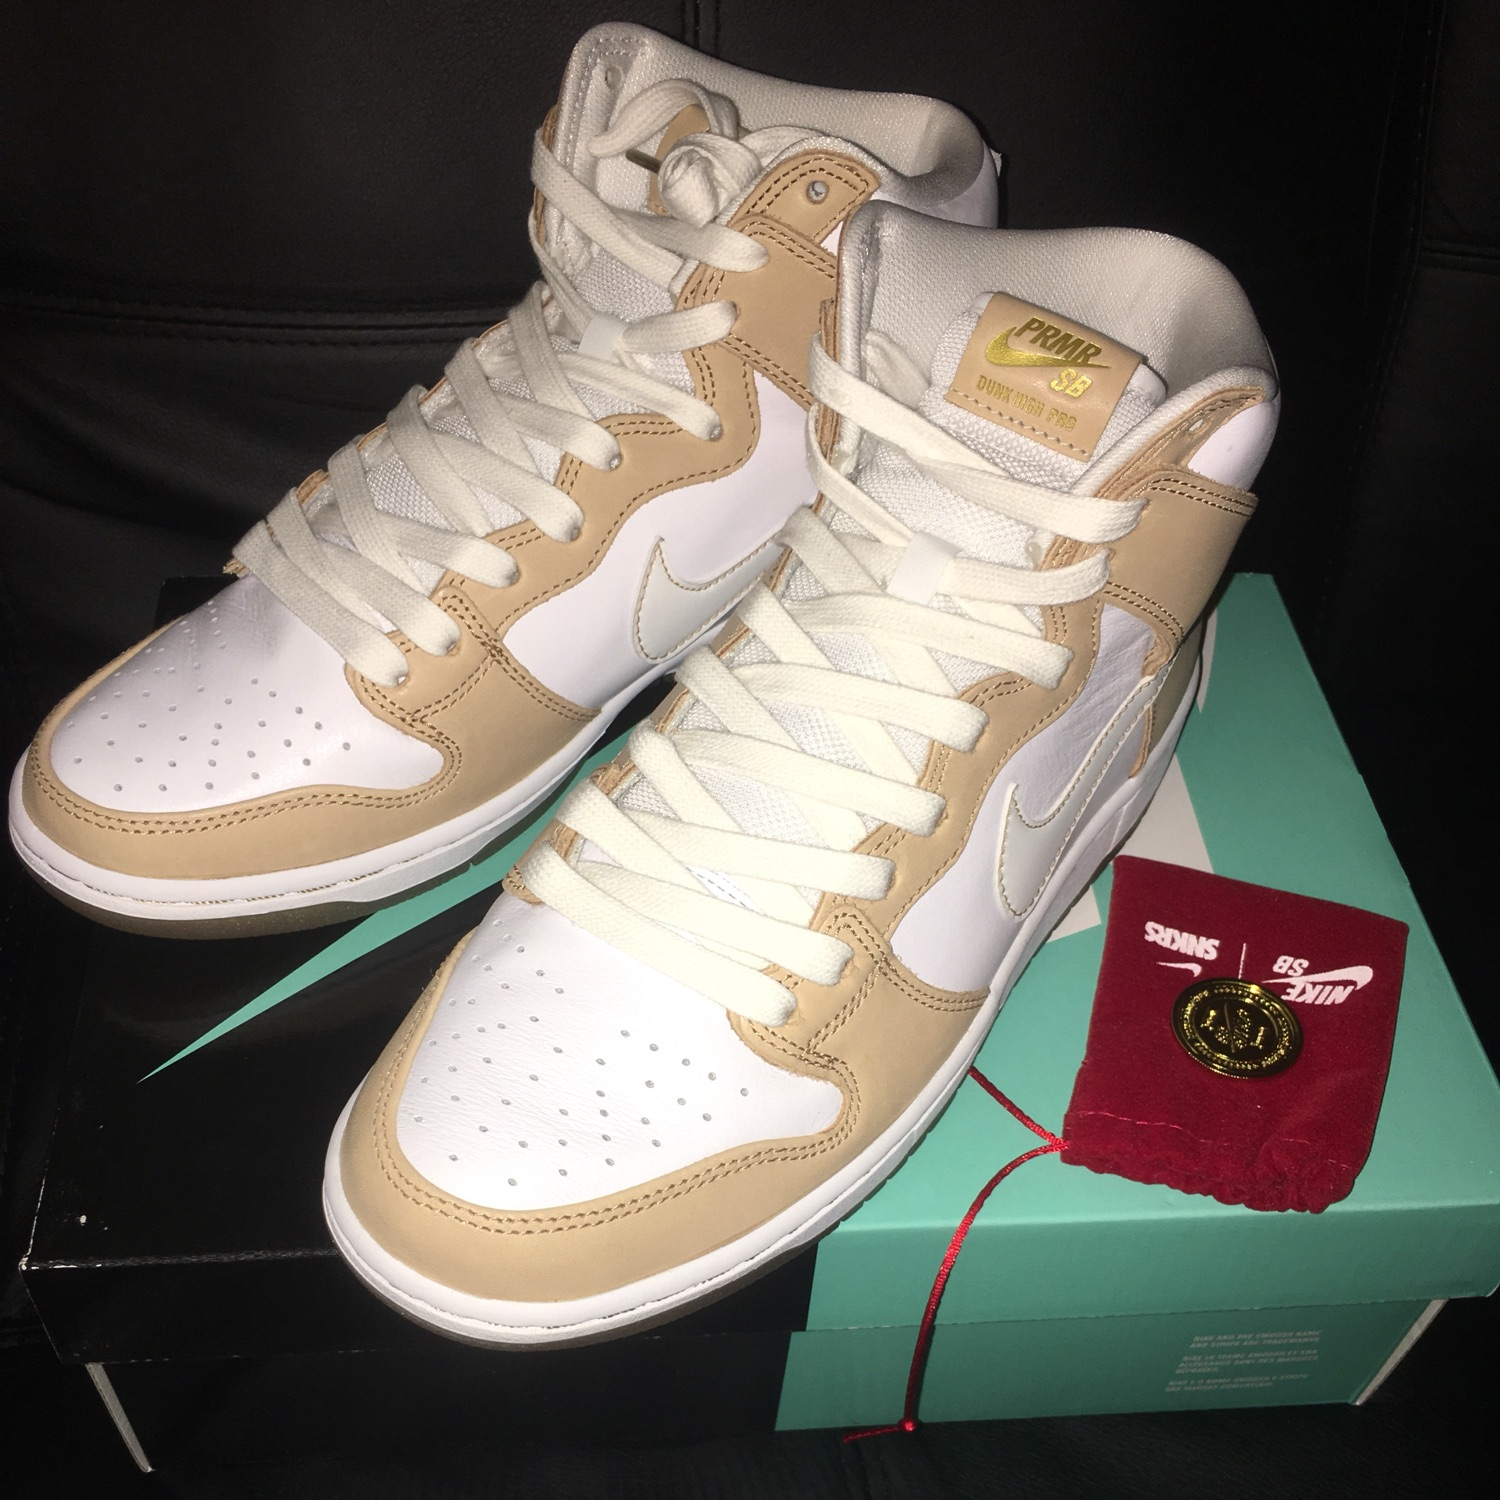 official photos 4794f b5083 Nike Sb X Premier Win Some Lose Some Edition